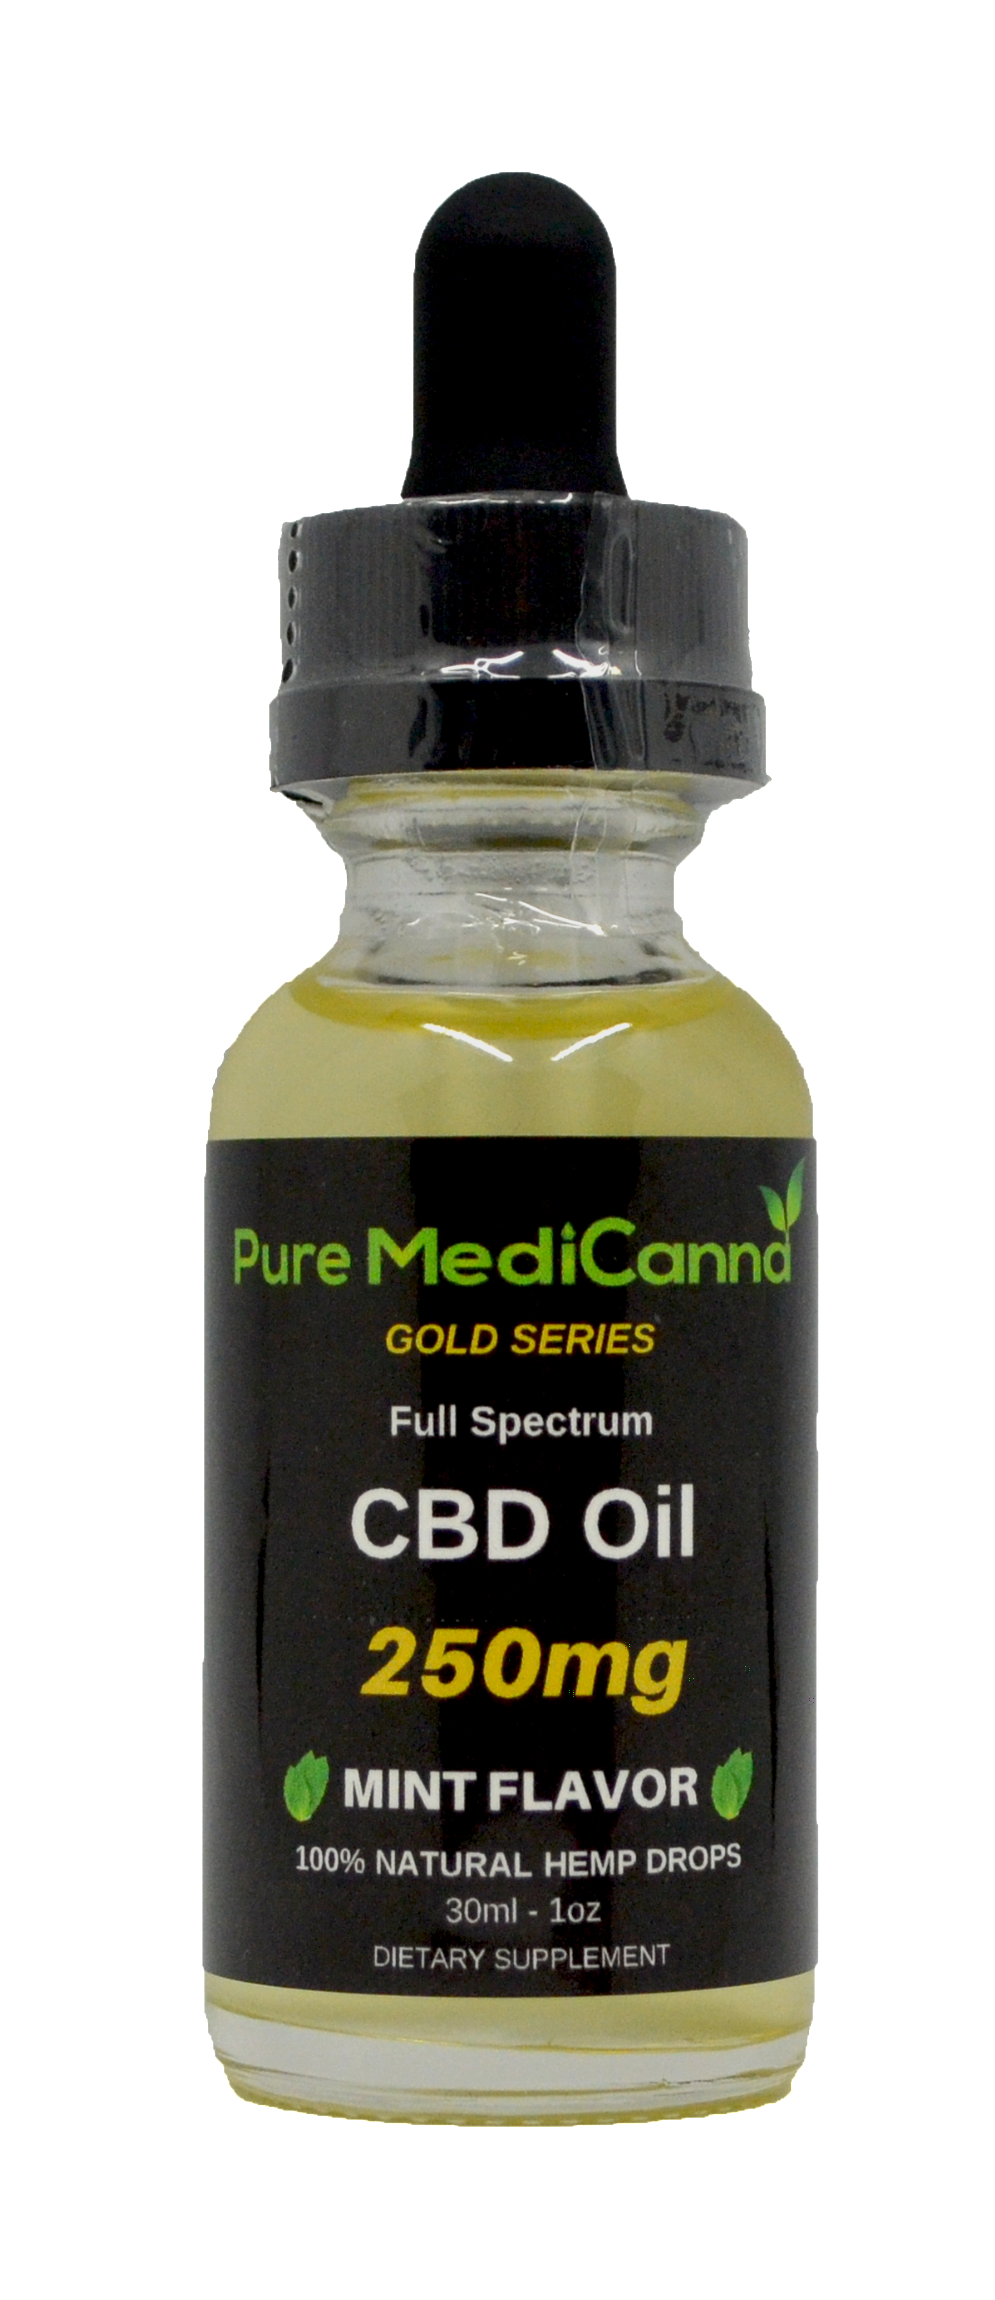 Gold Series CBD Oil Tincture - Full Spectrum CBD - 250mg